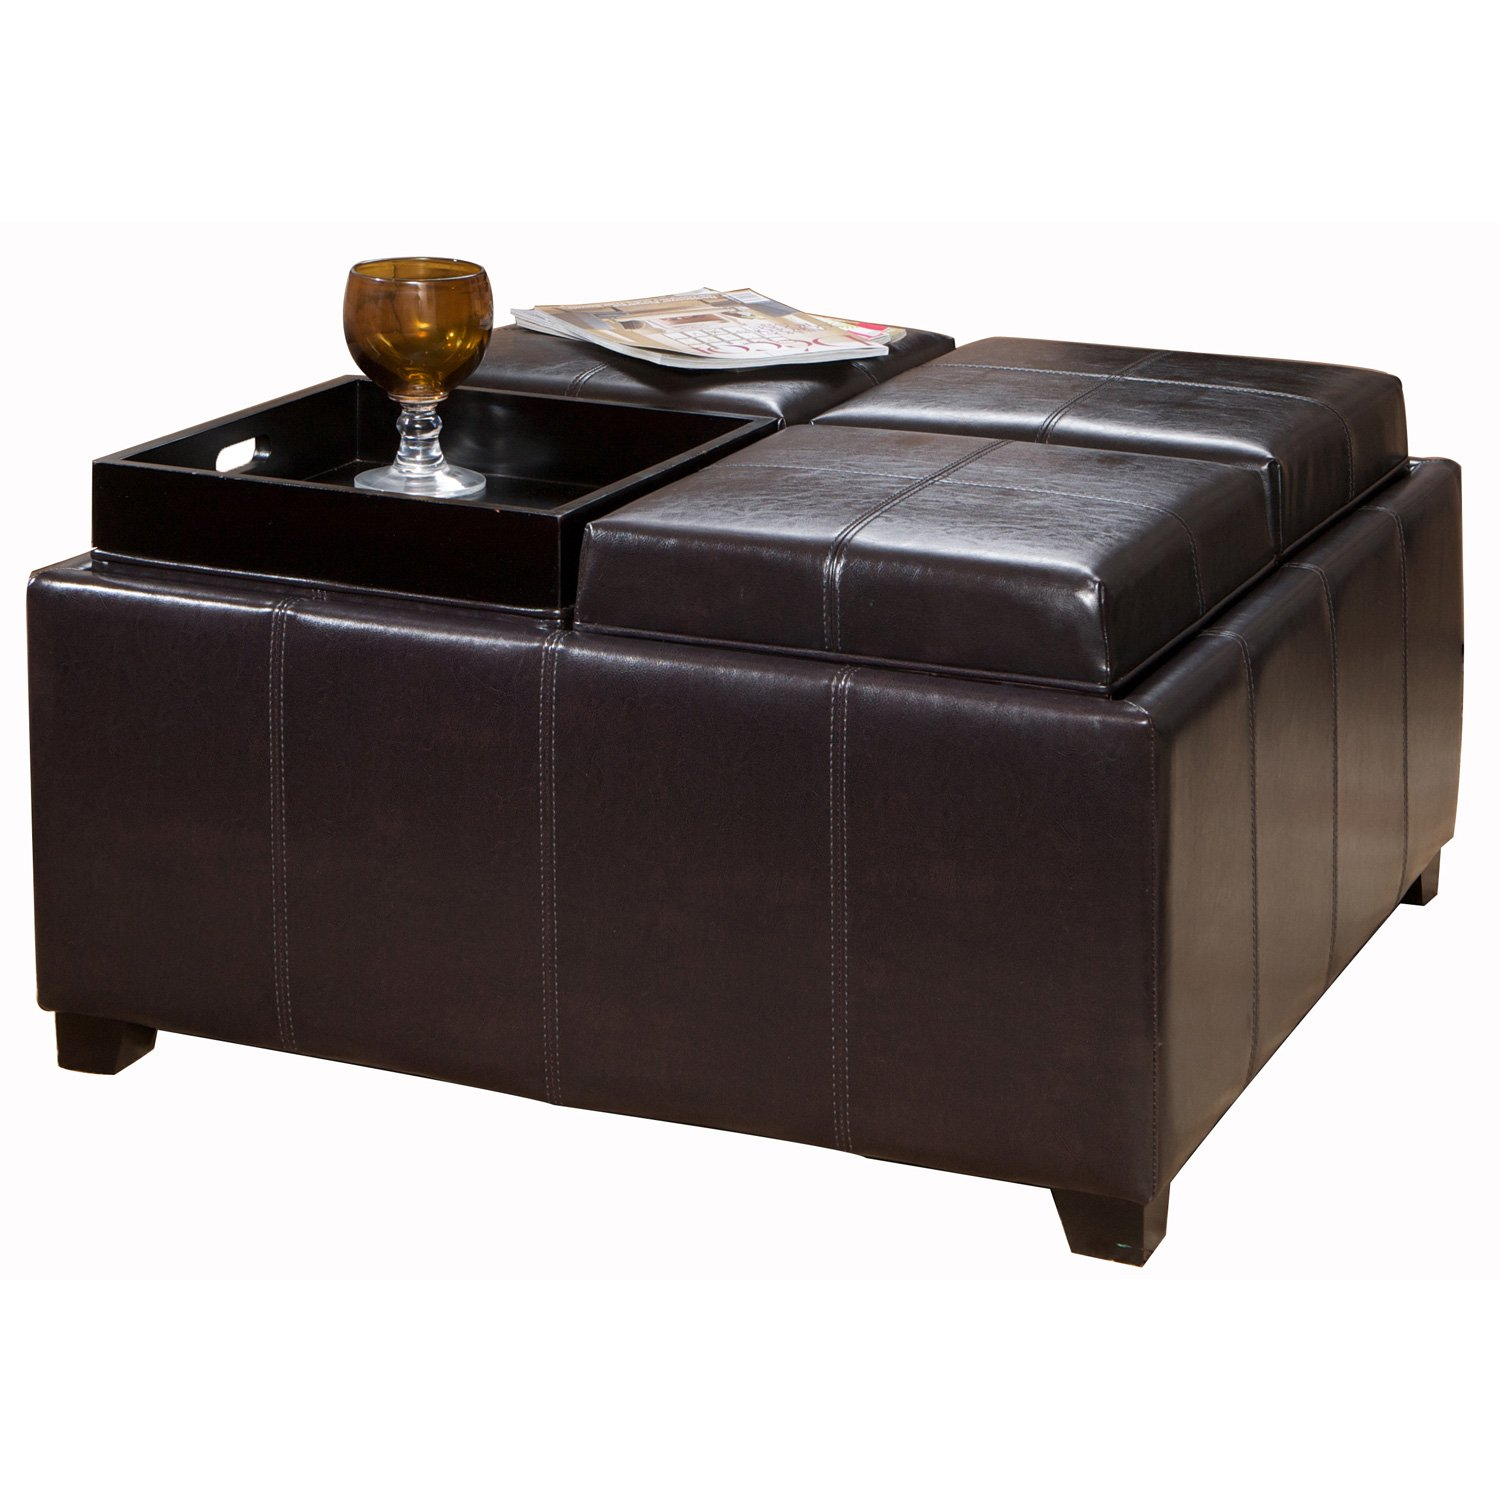 Amazon Best Selling Dartmouth Leather Tray Ottoman Black